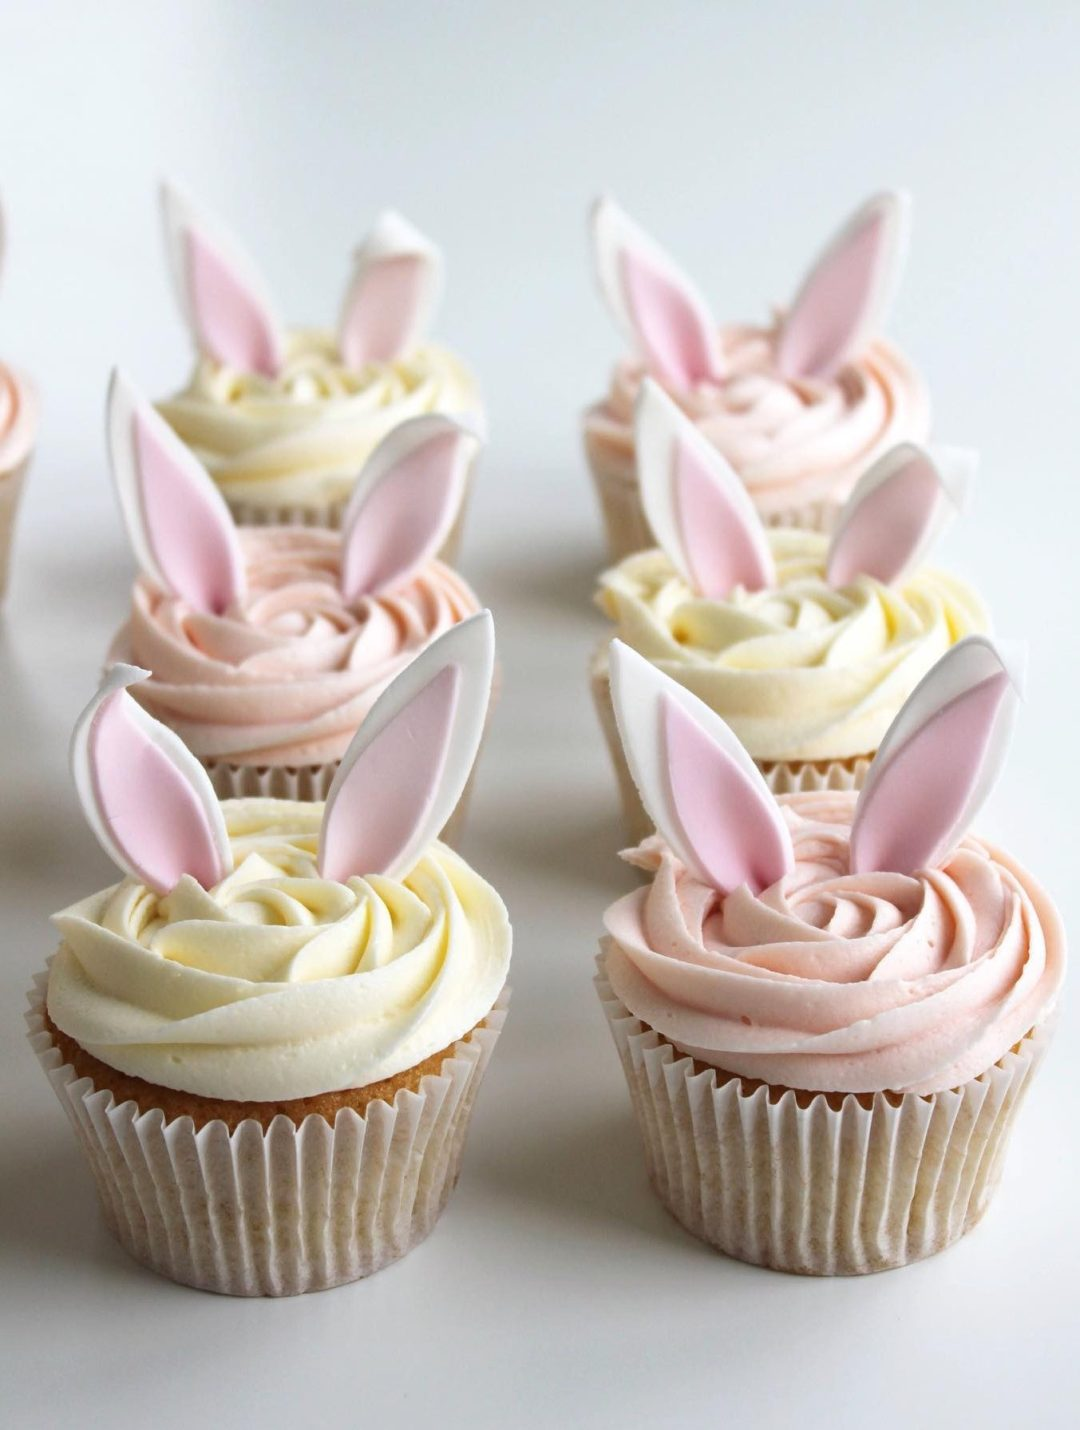 White And Pink Bunny Cupcakes With Toppers